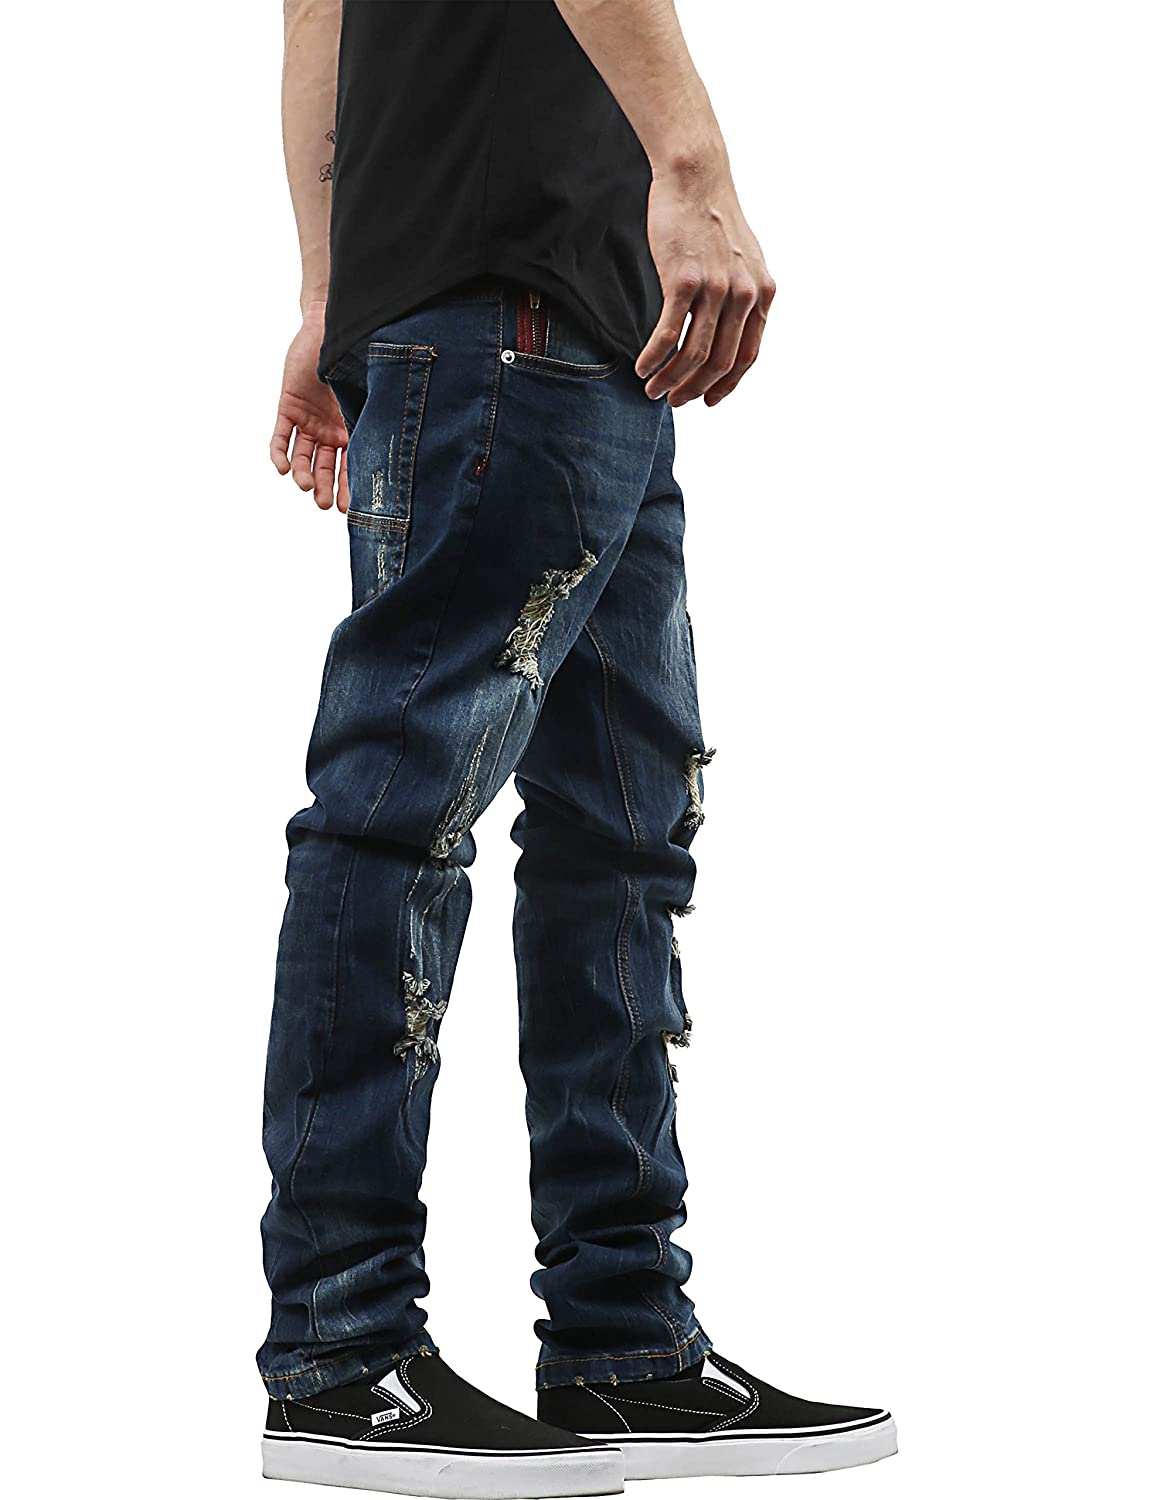 f40bea875a644d Ma Croix Mens Skinny Fit Stretch Jeans Distressed Ripped Denim Pants at  Amazon Men's Clothing store: